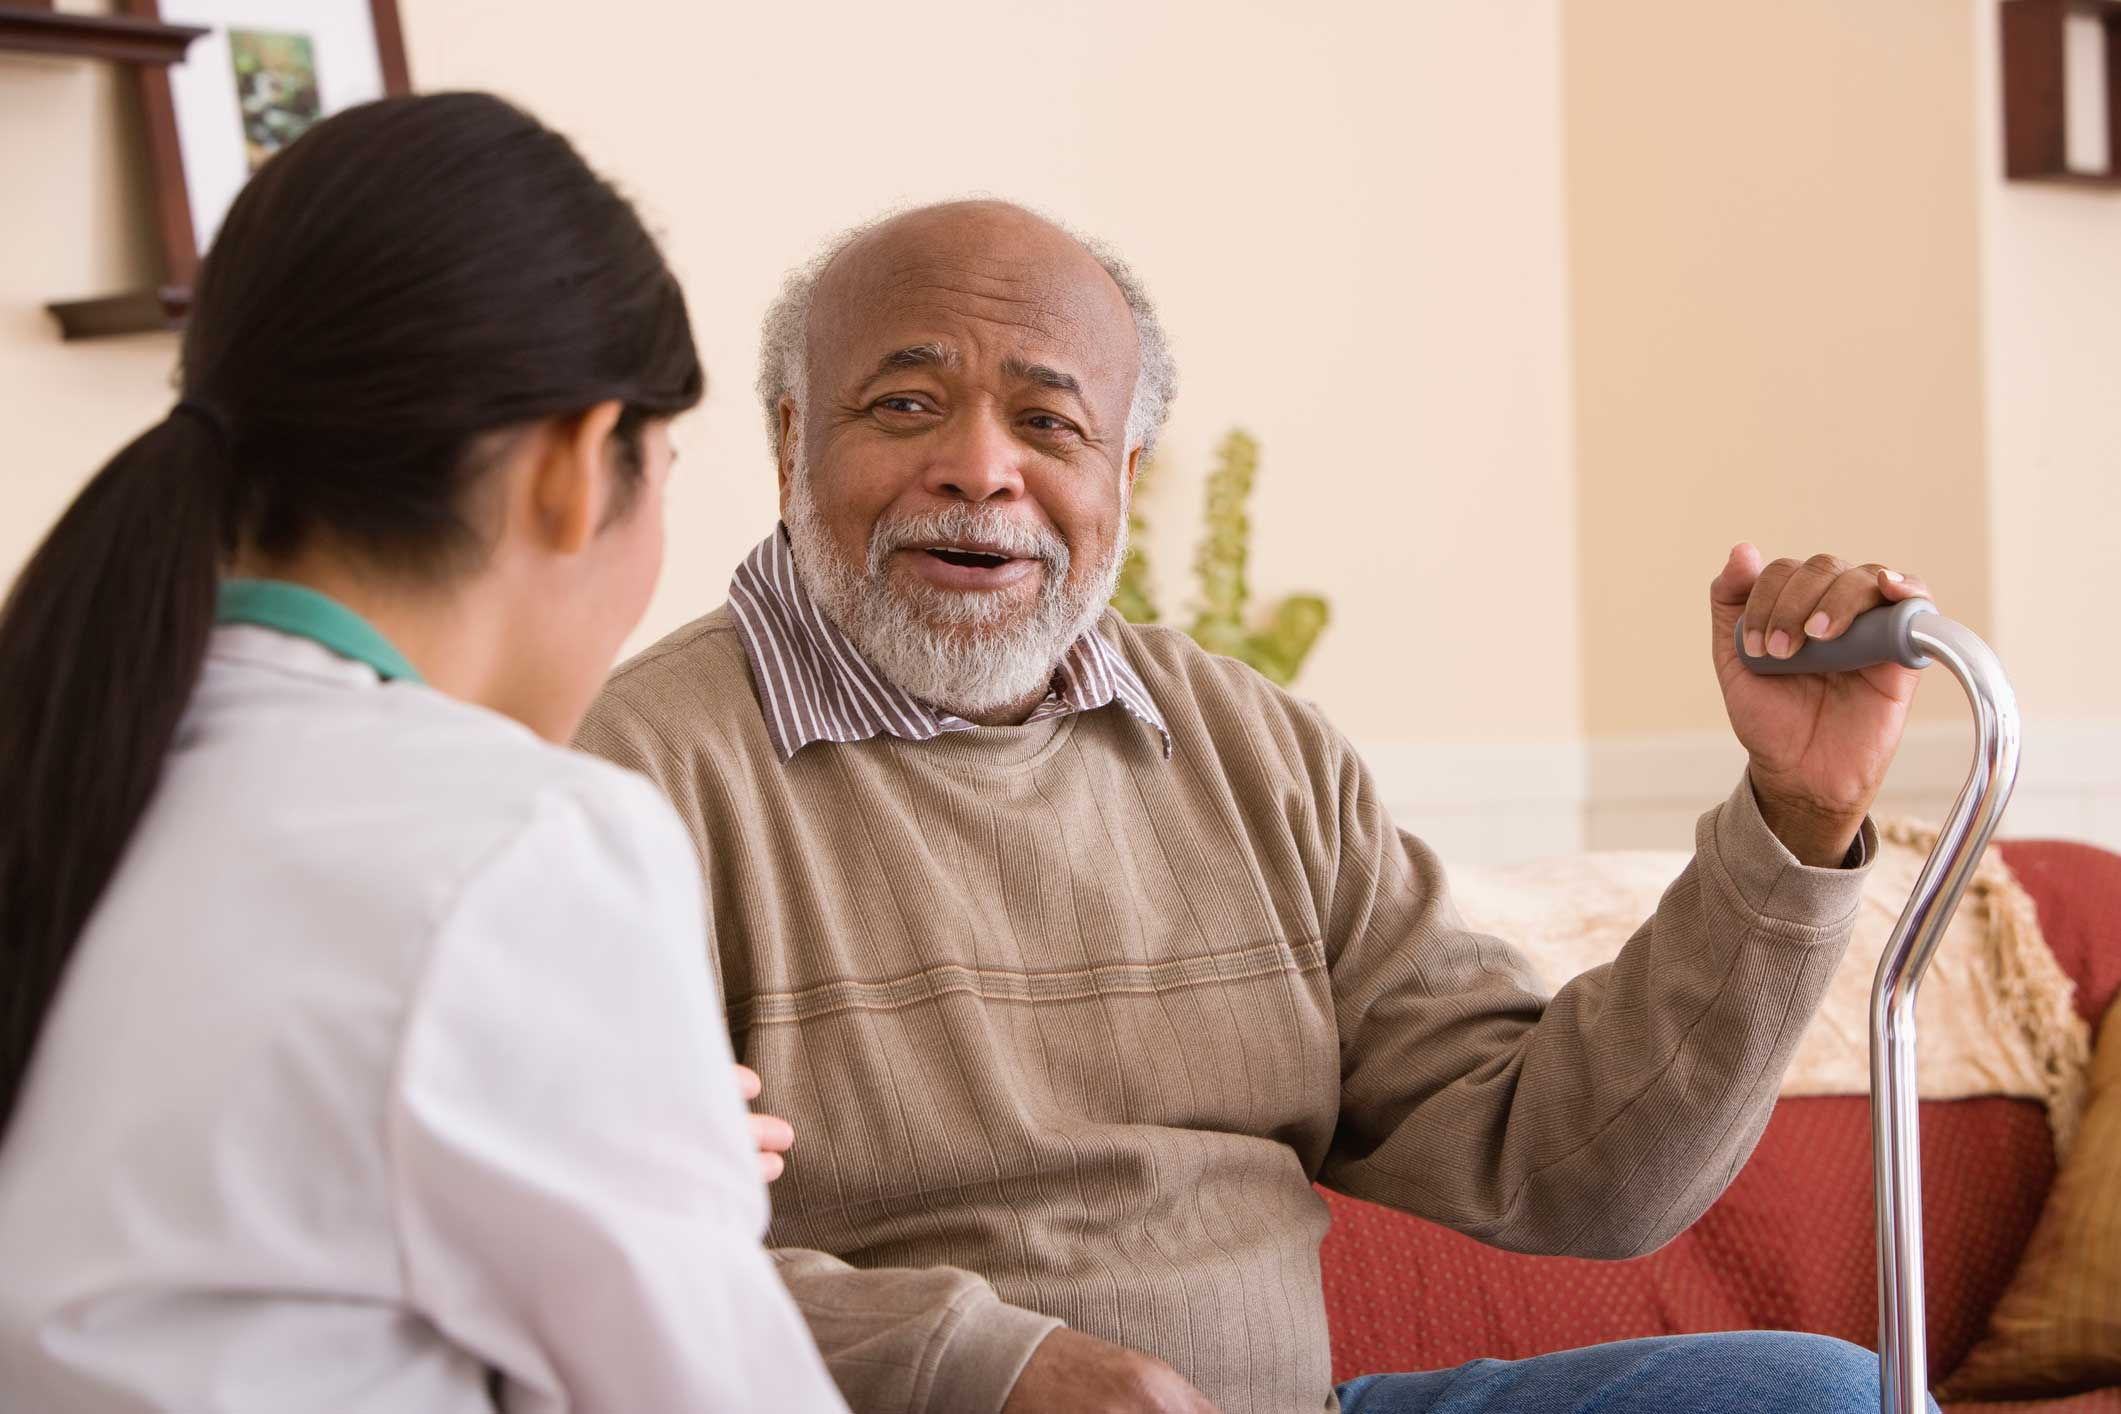 In-Home Care During the COVID-19 Pandemic